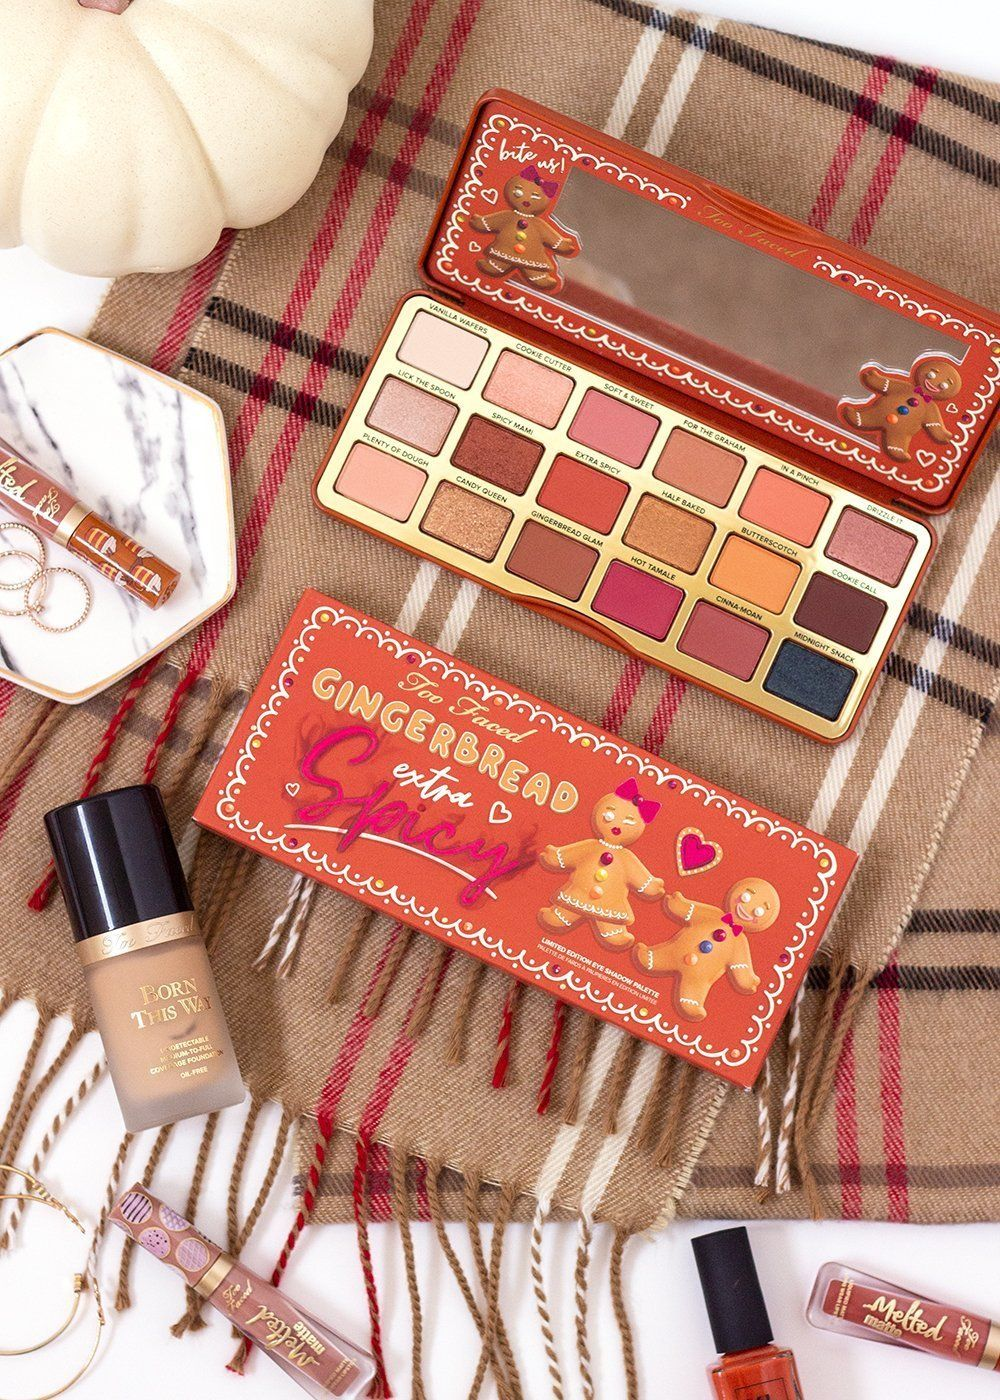 Too Faced Gingerbread Extra Spicy Palette Review New